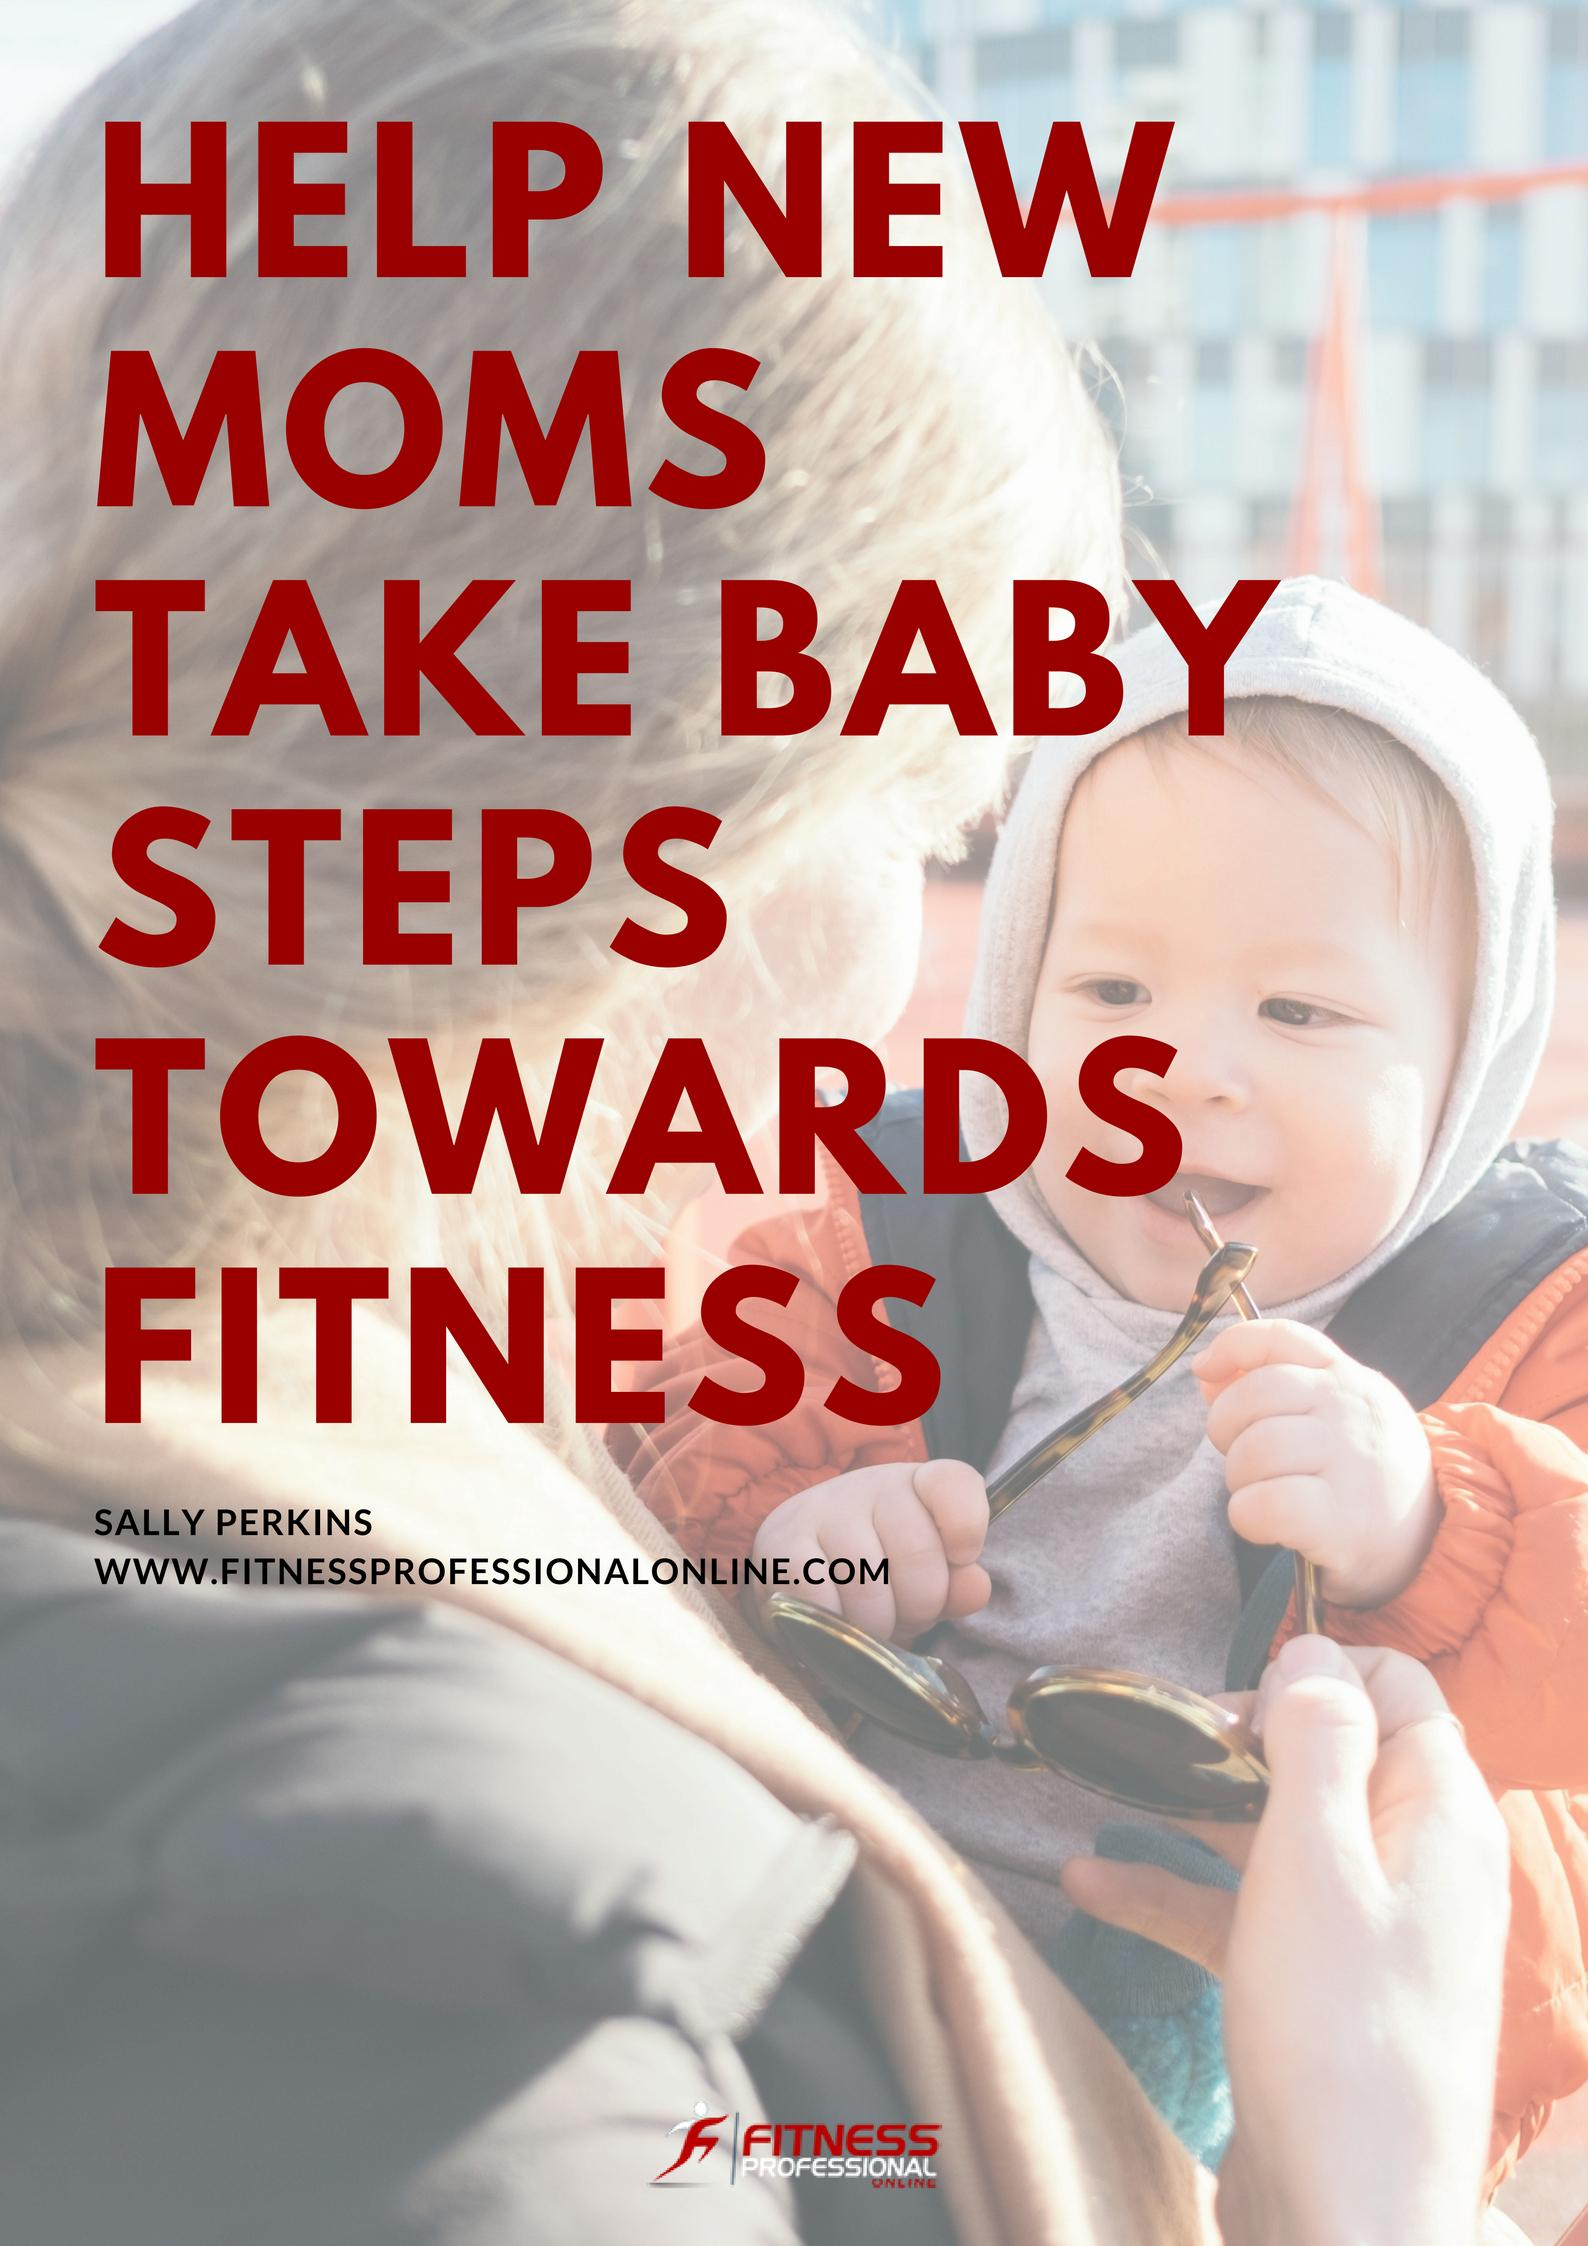 The first and most important tip for new mom's about fitness is to listen to their bodies, get enough time off, and start slow.